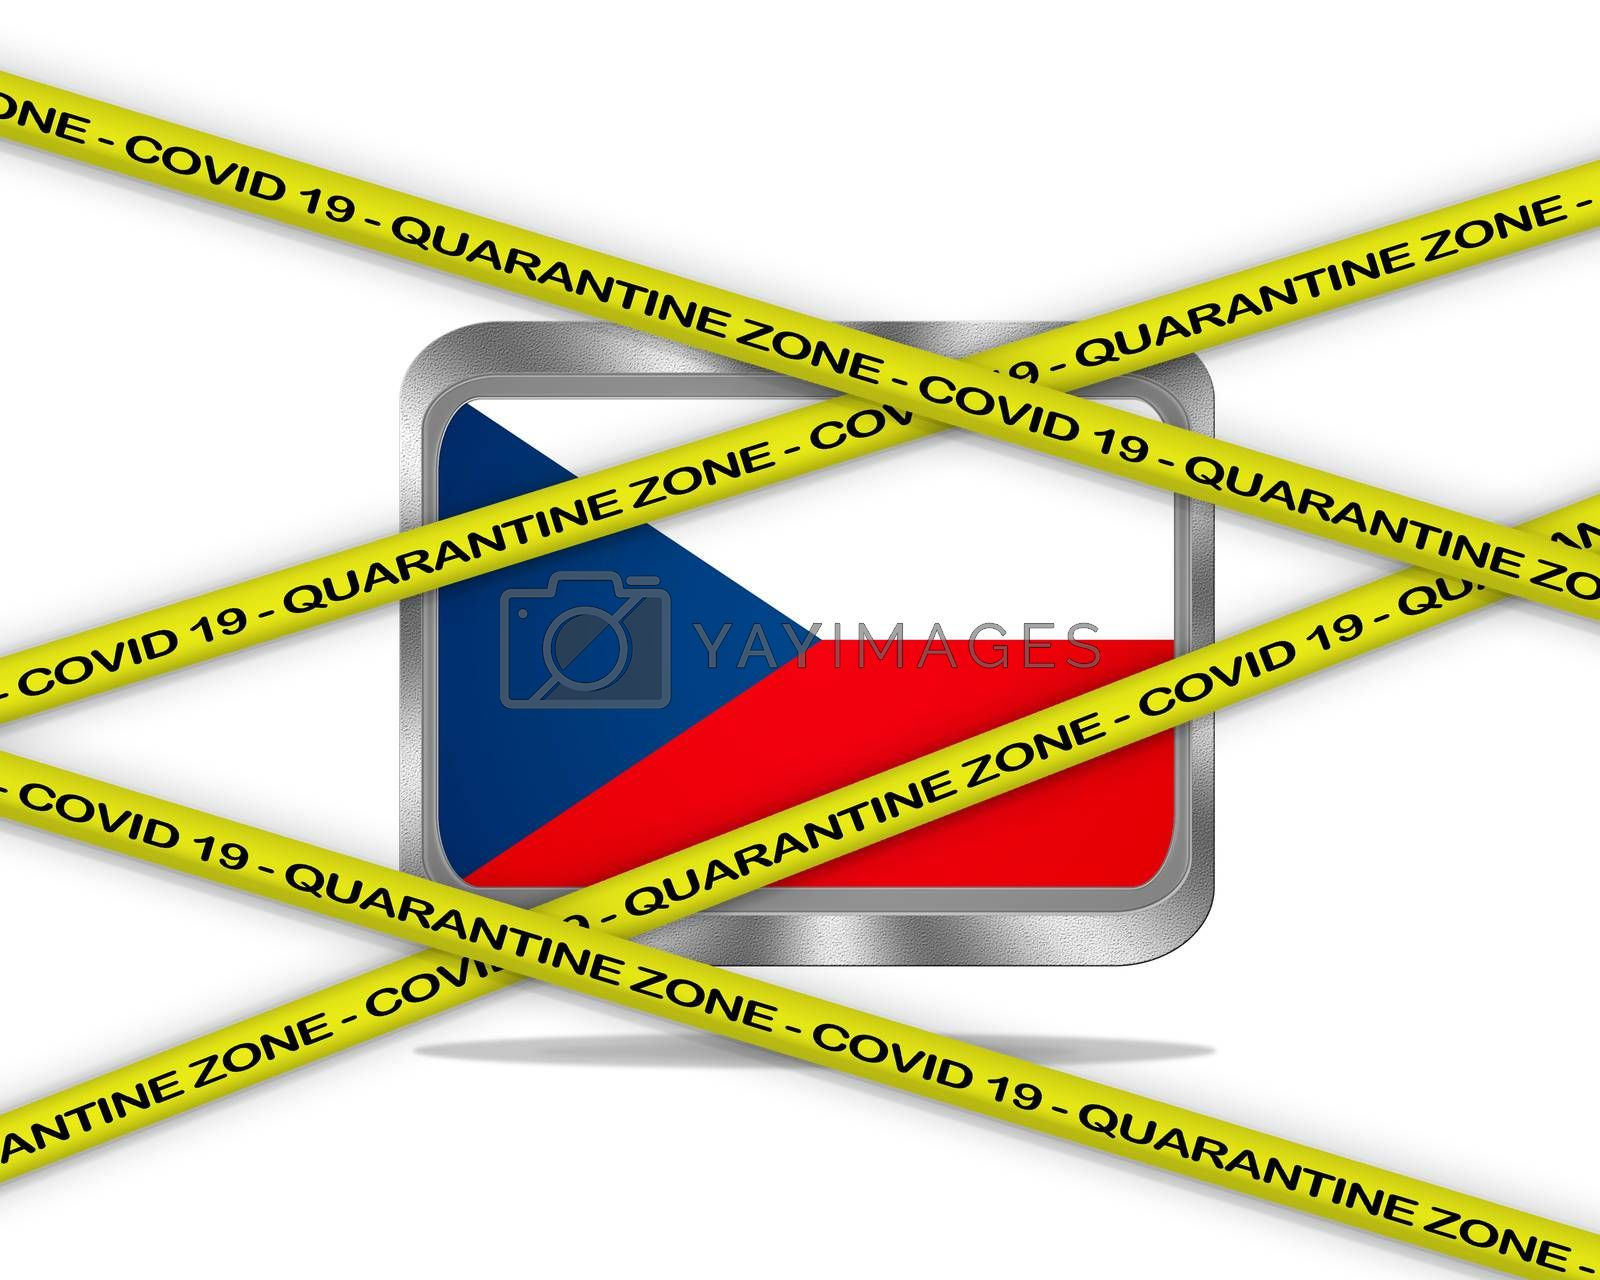 COVID-19 warning yellow ribbon written with: Quarantine zone Cover 19 on  Republic Czech flag illustration. Coronavirus danger area, quarantined country.